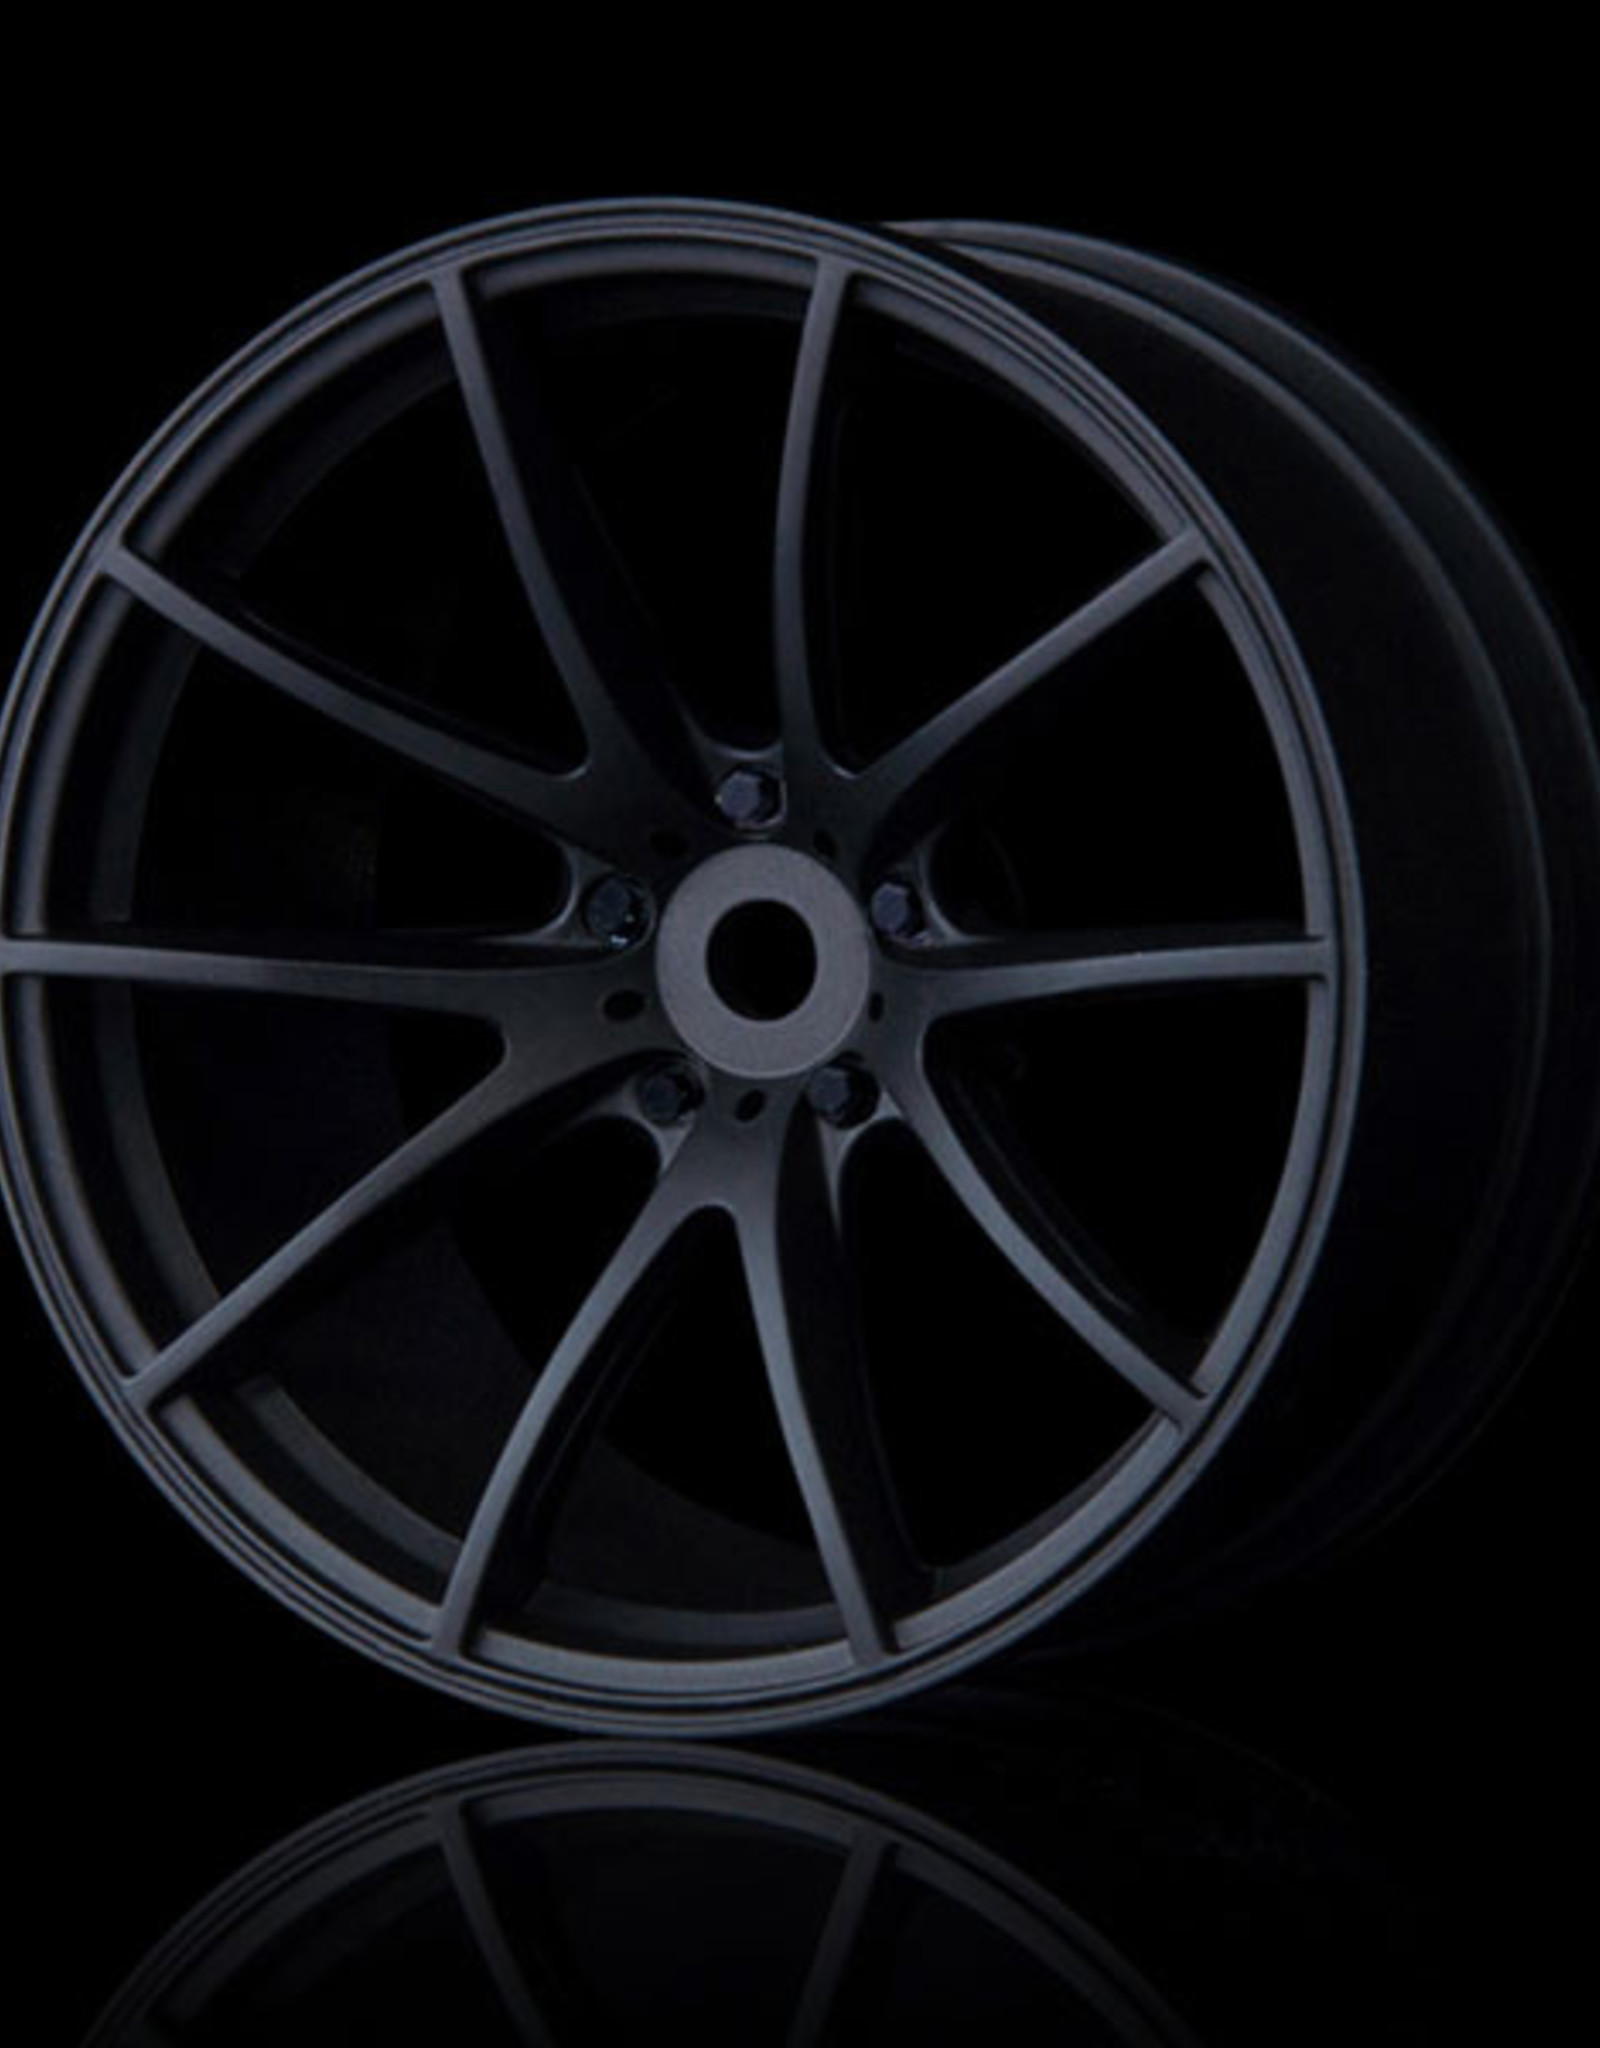 MST G25 Wheel (4) by MST Flat Black 5mm